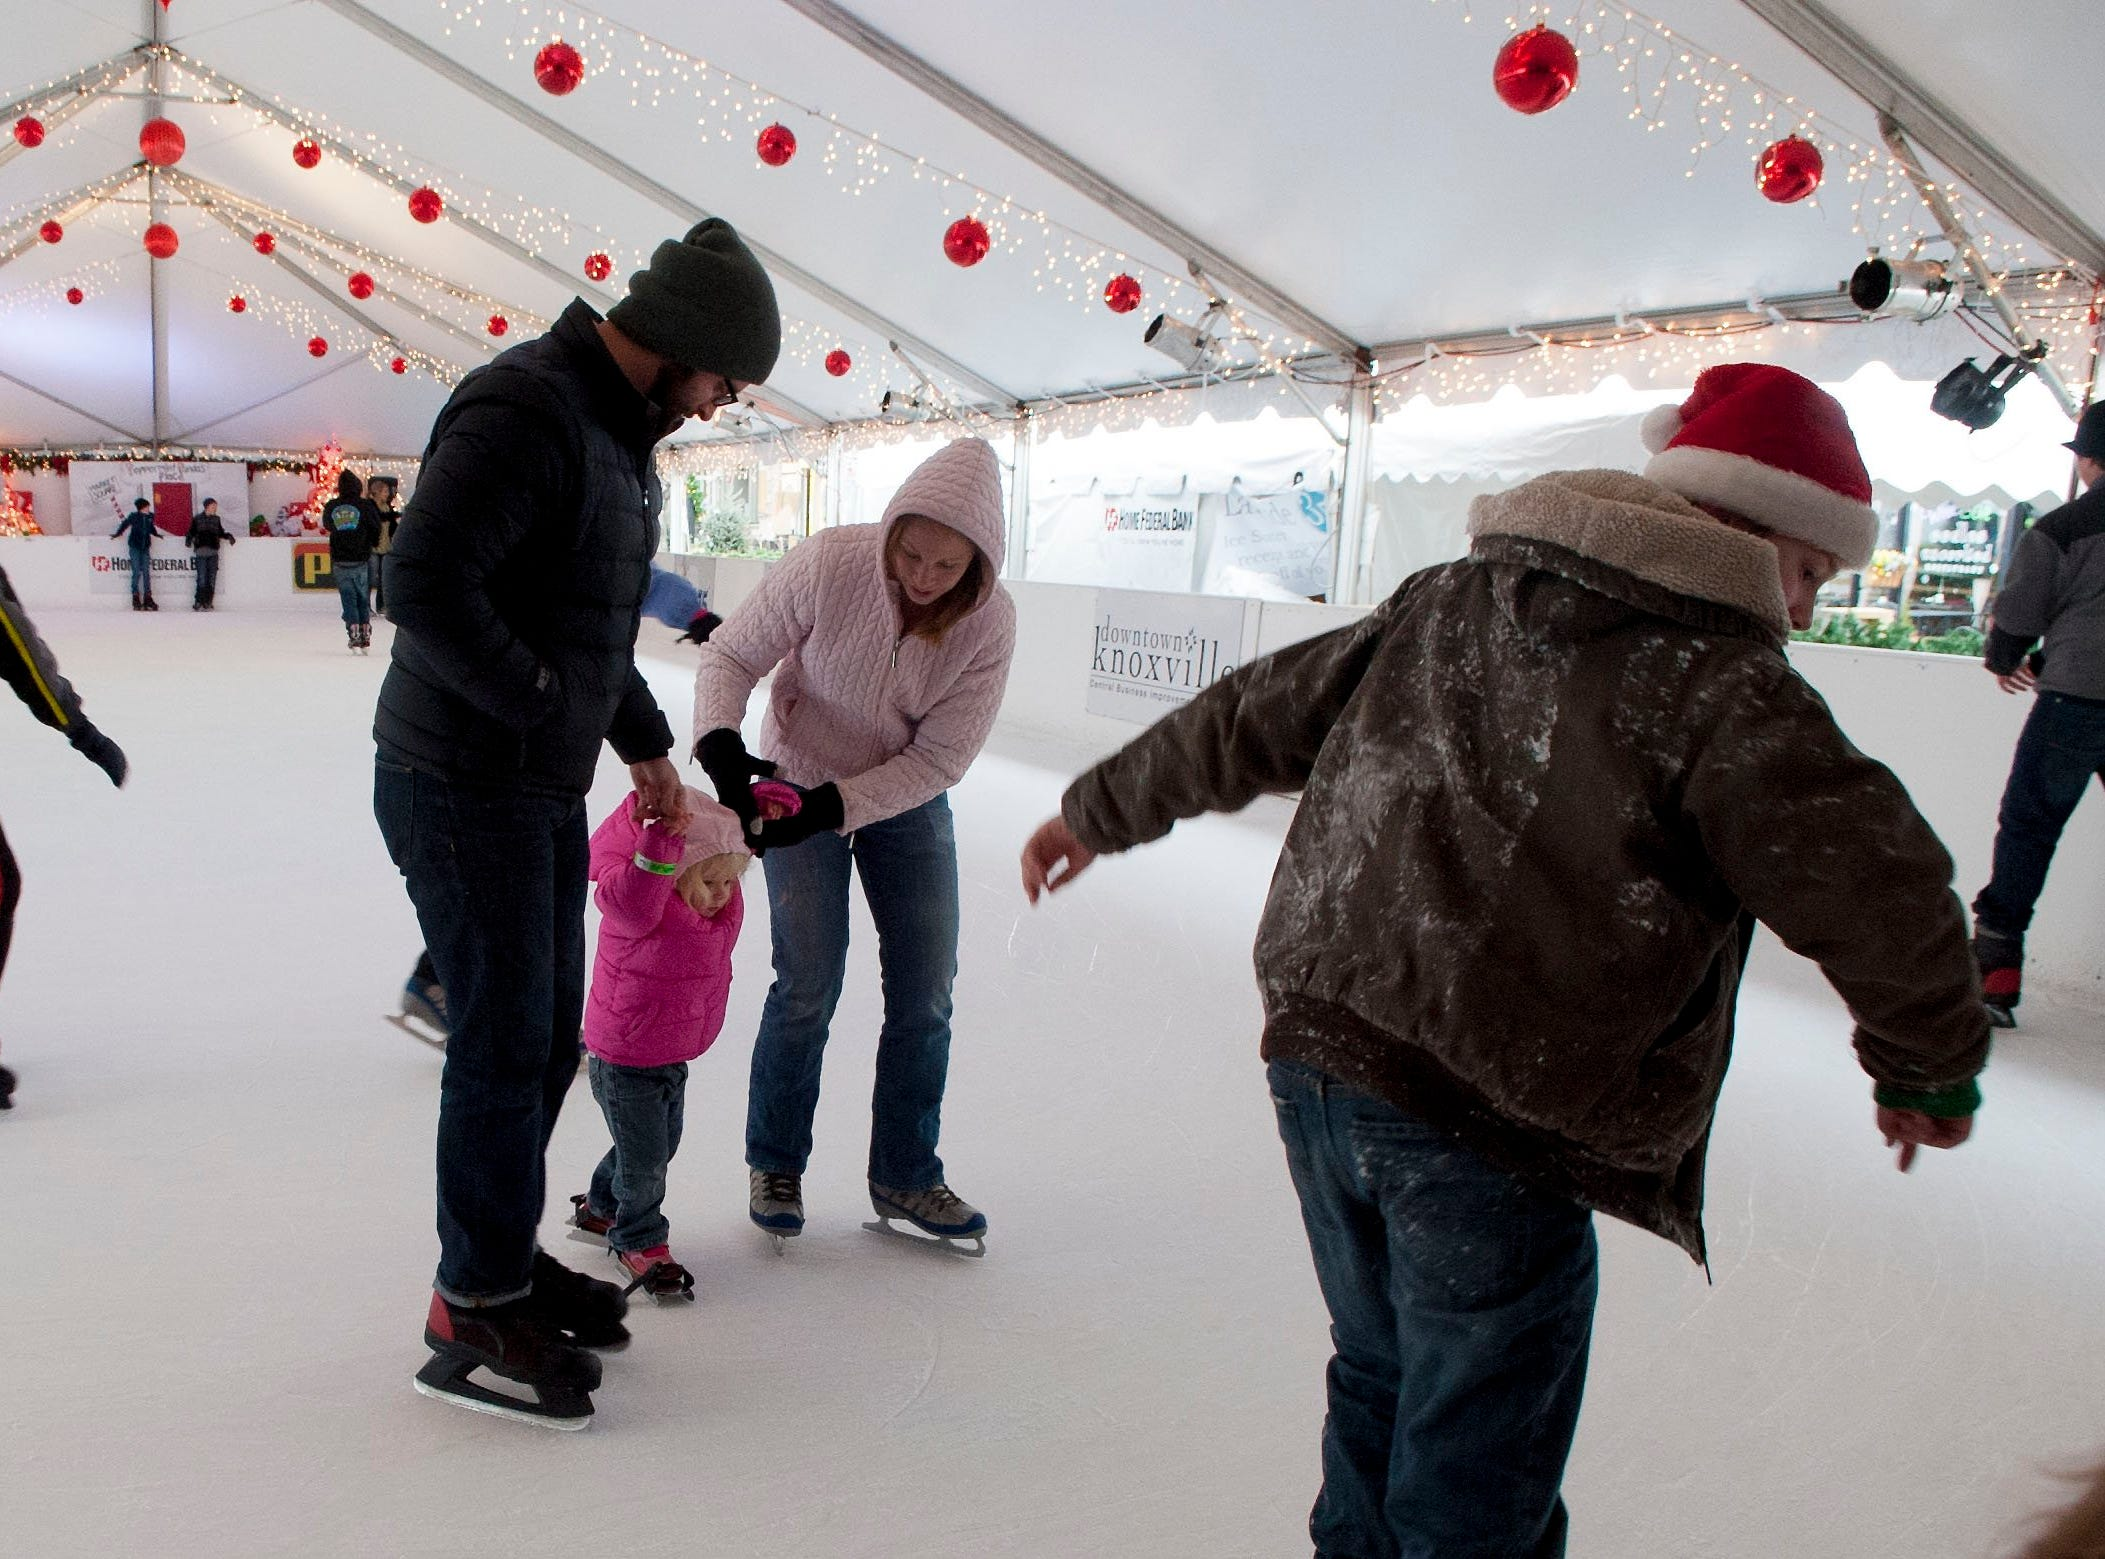 Joseph and Johanna Luncford help their tow year old daughter McKinley Luncford navigate the ice at the  outdoor ice skating rink on Market Square in downtown Knoxville Tuesday December 24, 2013.Knoxville's Holidays on Ice, is an outdoor ice skating rink on Market Square in downtown Knoxville.  Skaters can enjoy the ice under a tent with Christmas lights rain or shine.  The skating rink will be closed Christmas Day but will be open till January 5, 2014.